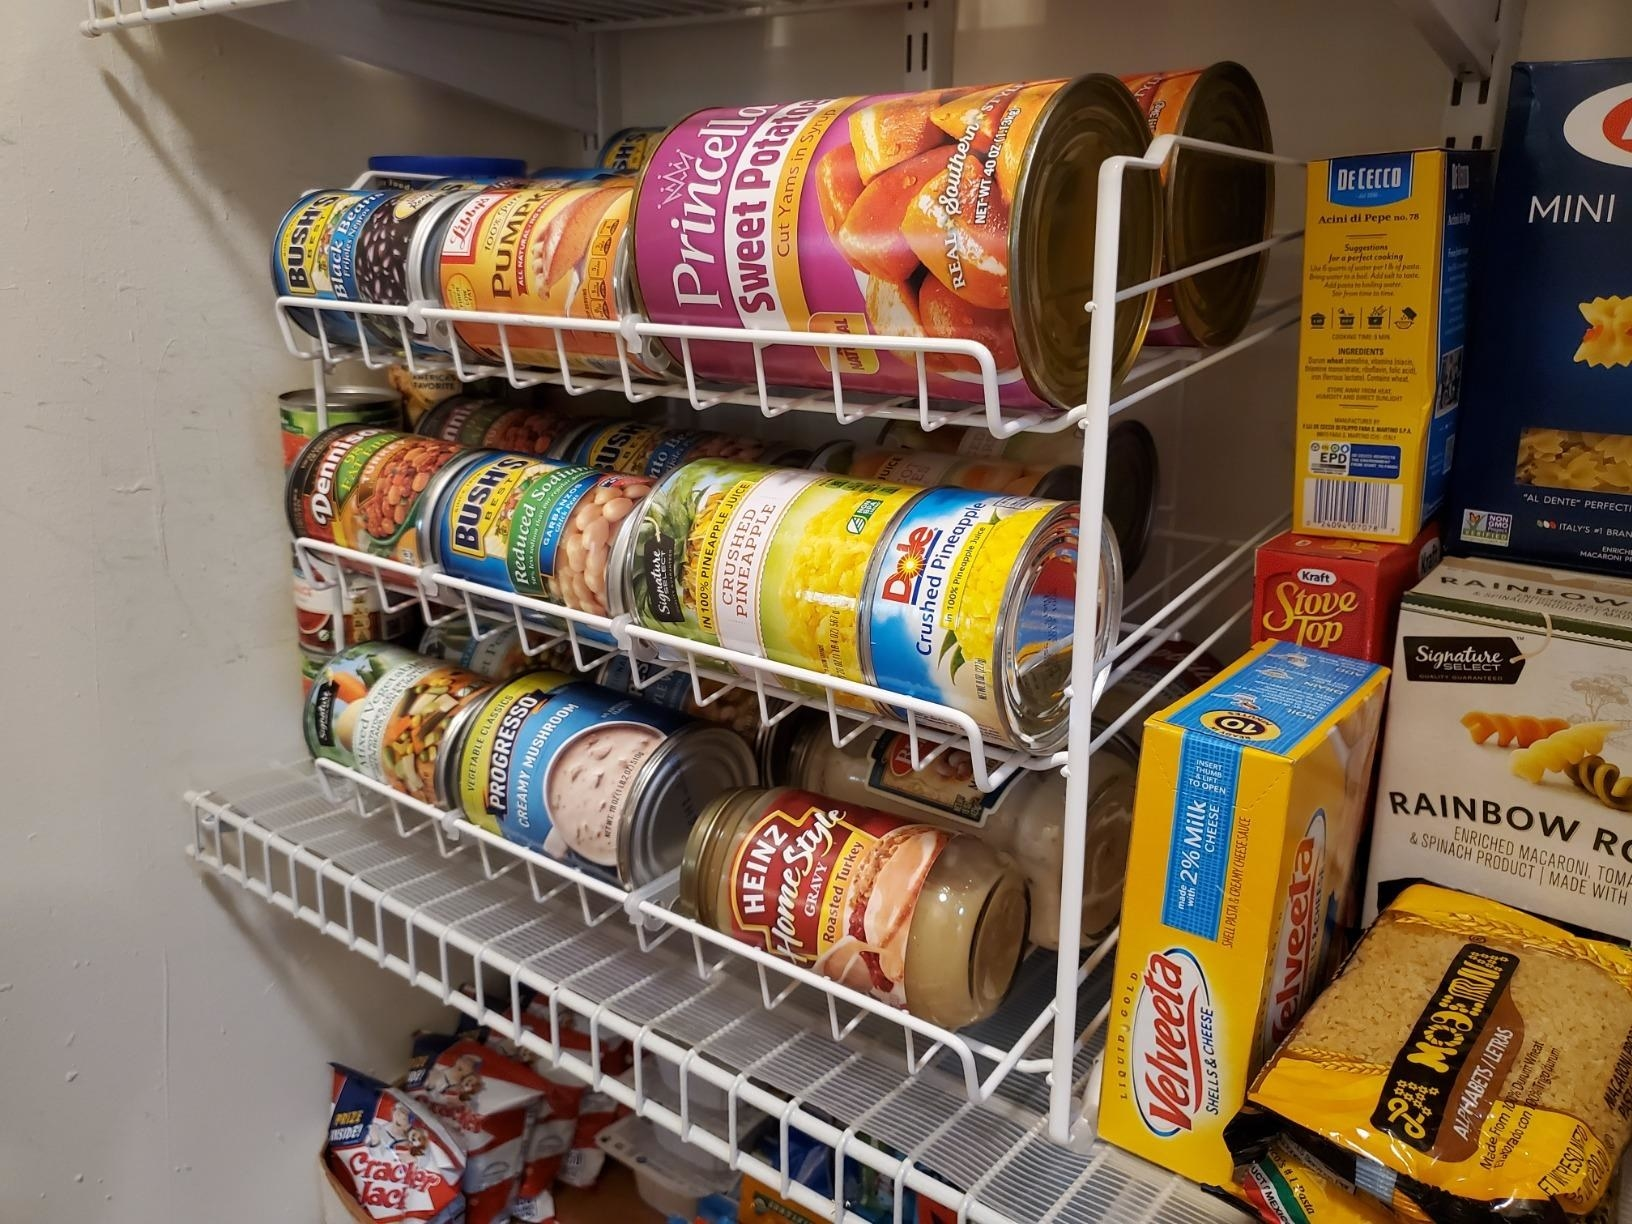 reviewer image of the white simplehouseware stackable can rack in a pantry